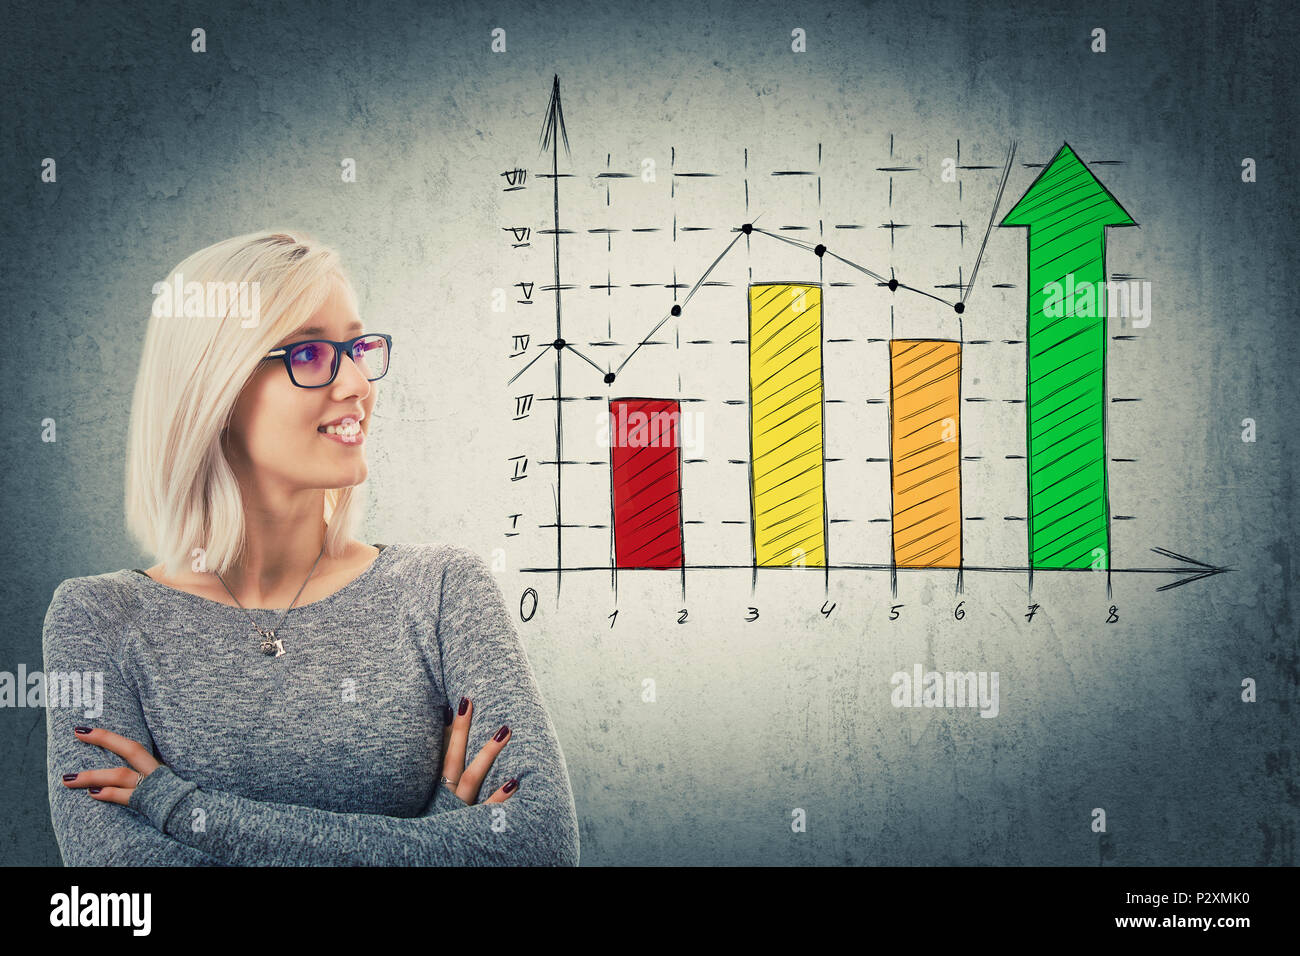 Close up portrait of young woman with crossed arms, wearing glasses looking at a rising graph. Business profit, growth and progress symbol on colorful - Stock Image